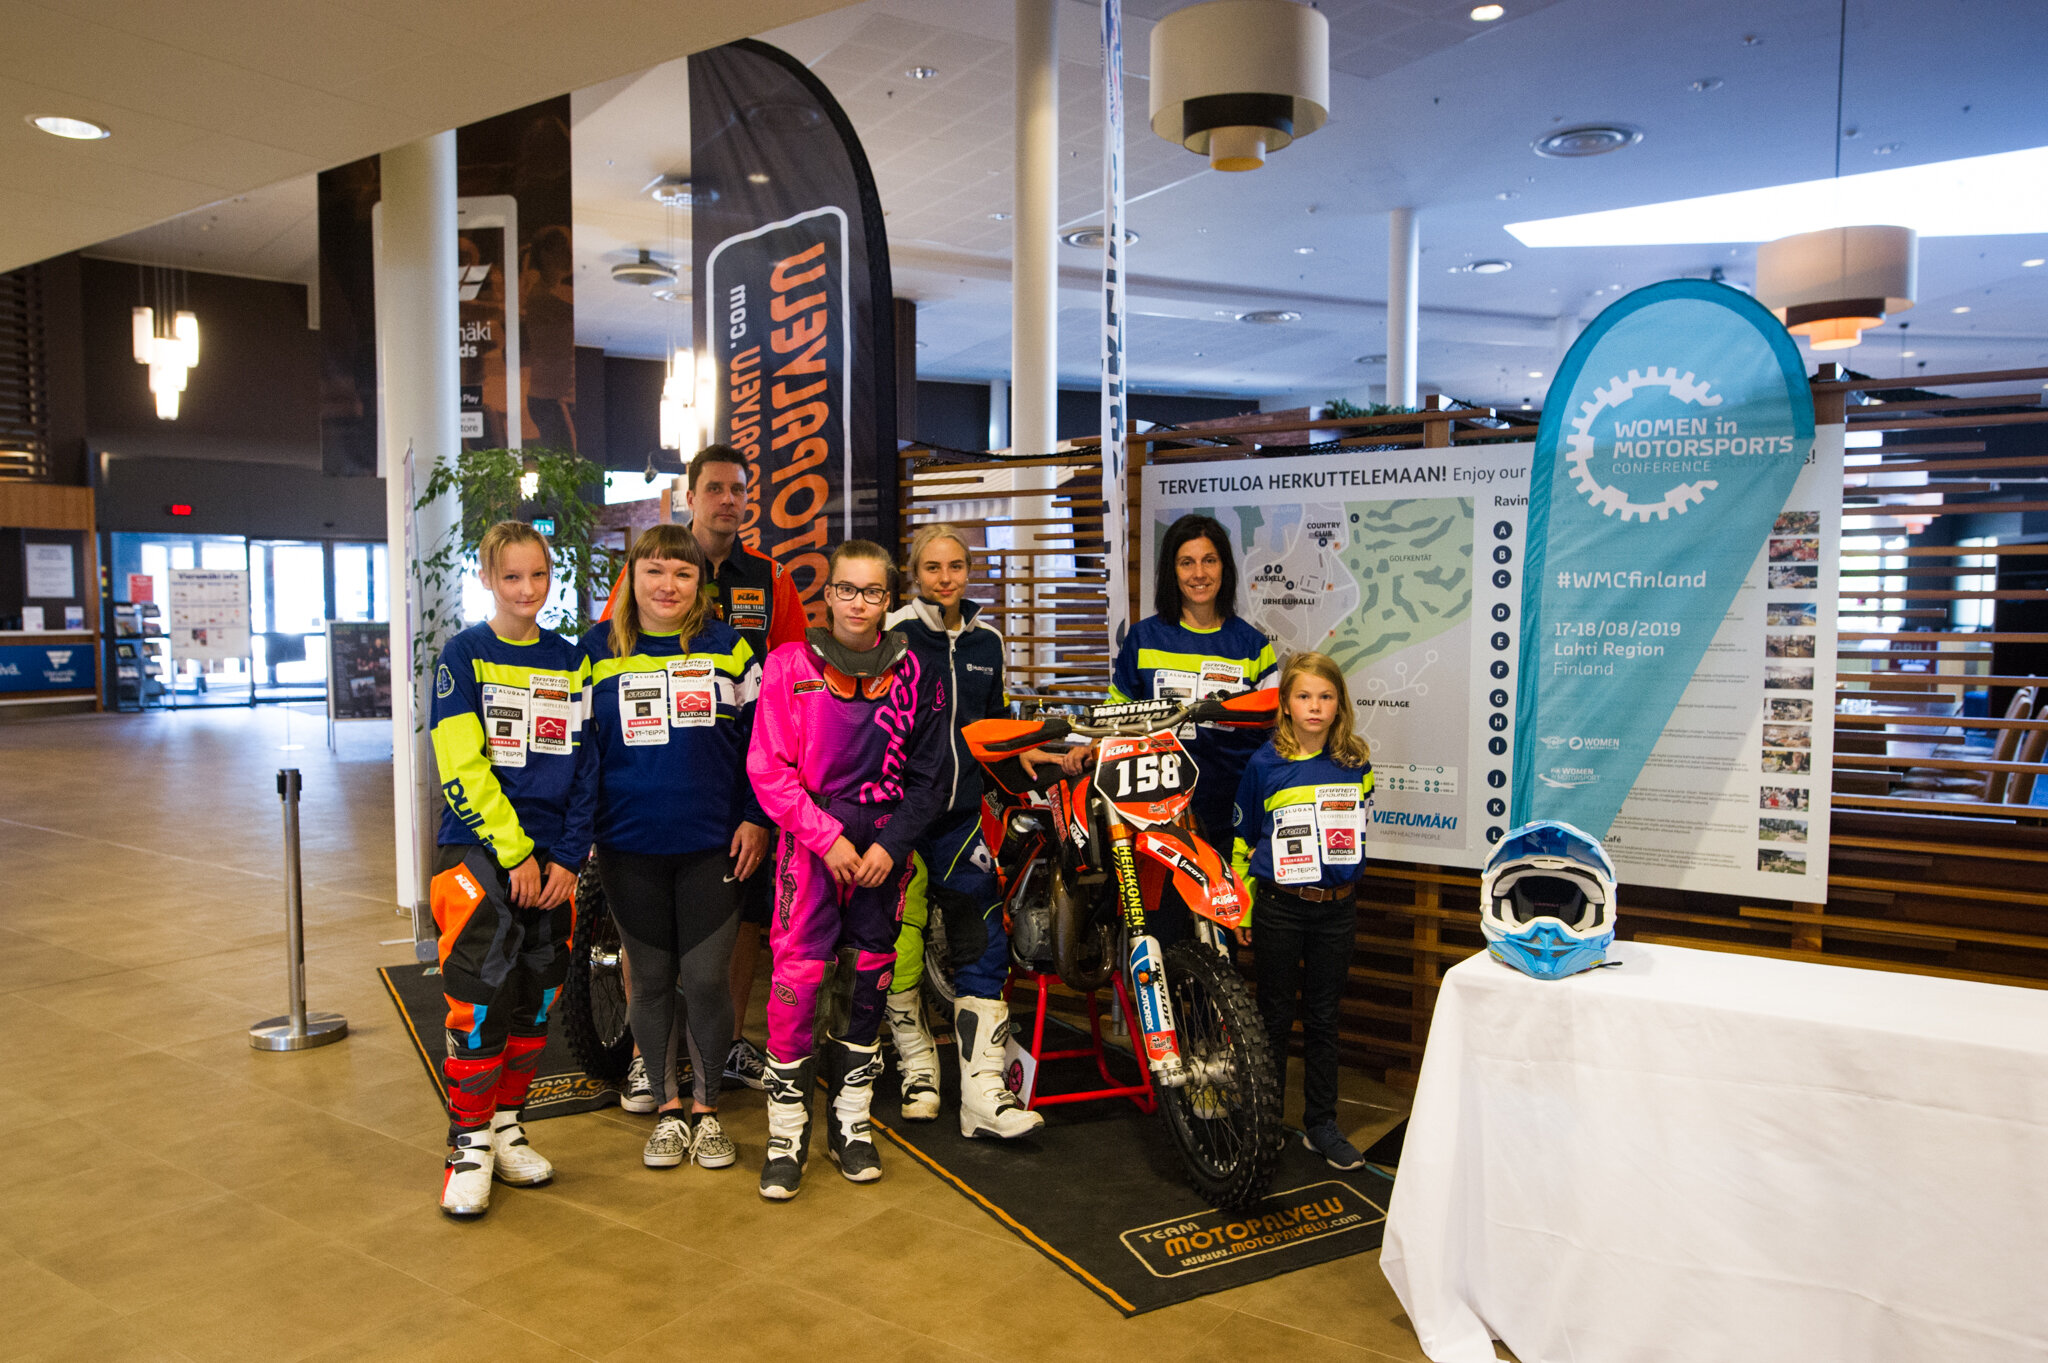 Enduro activity organised for the Conference